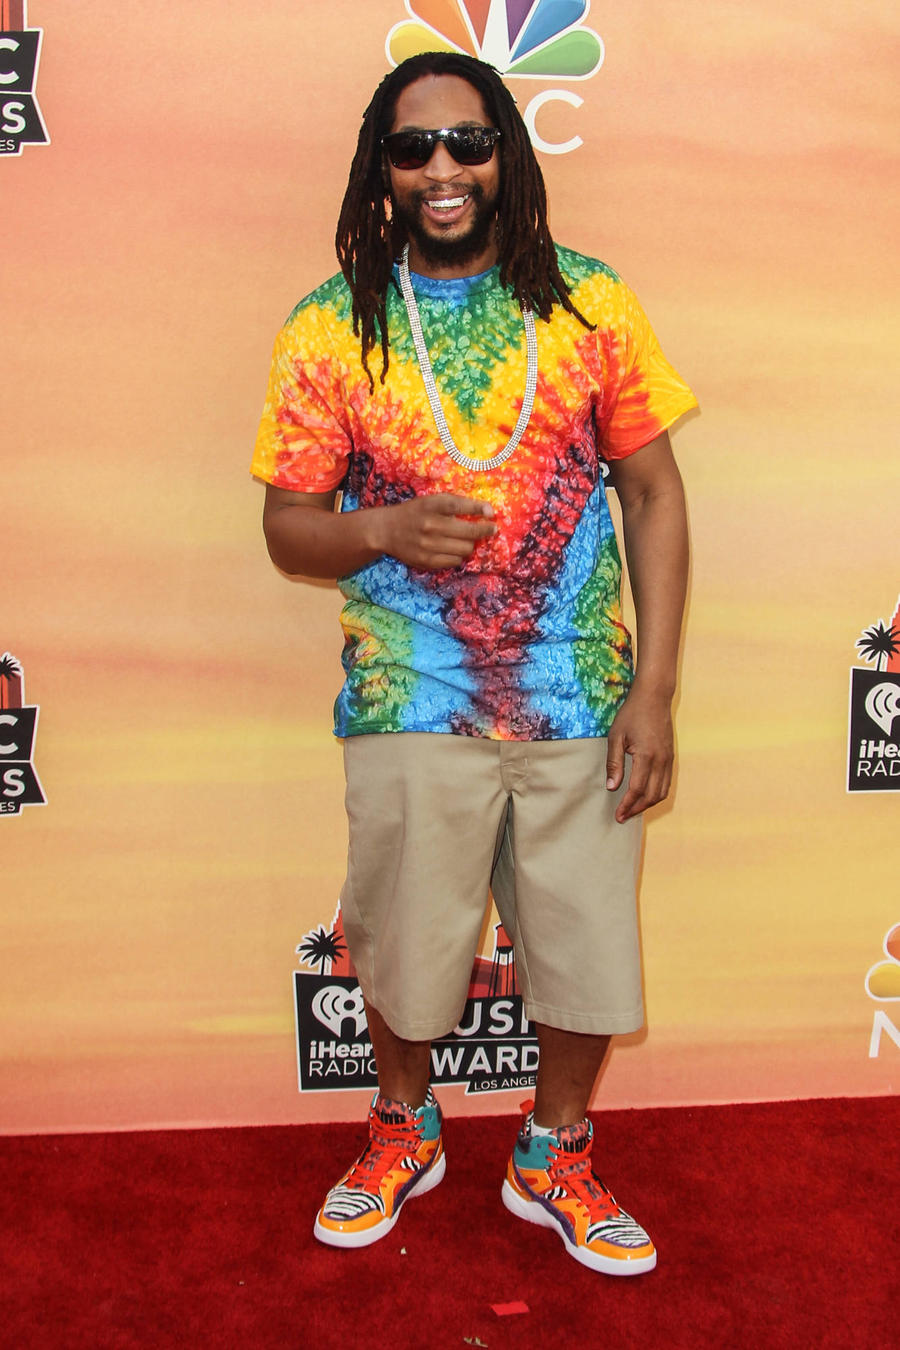 Lil Jon Threatens Legal Action Over Unlicensed Product